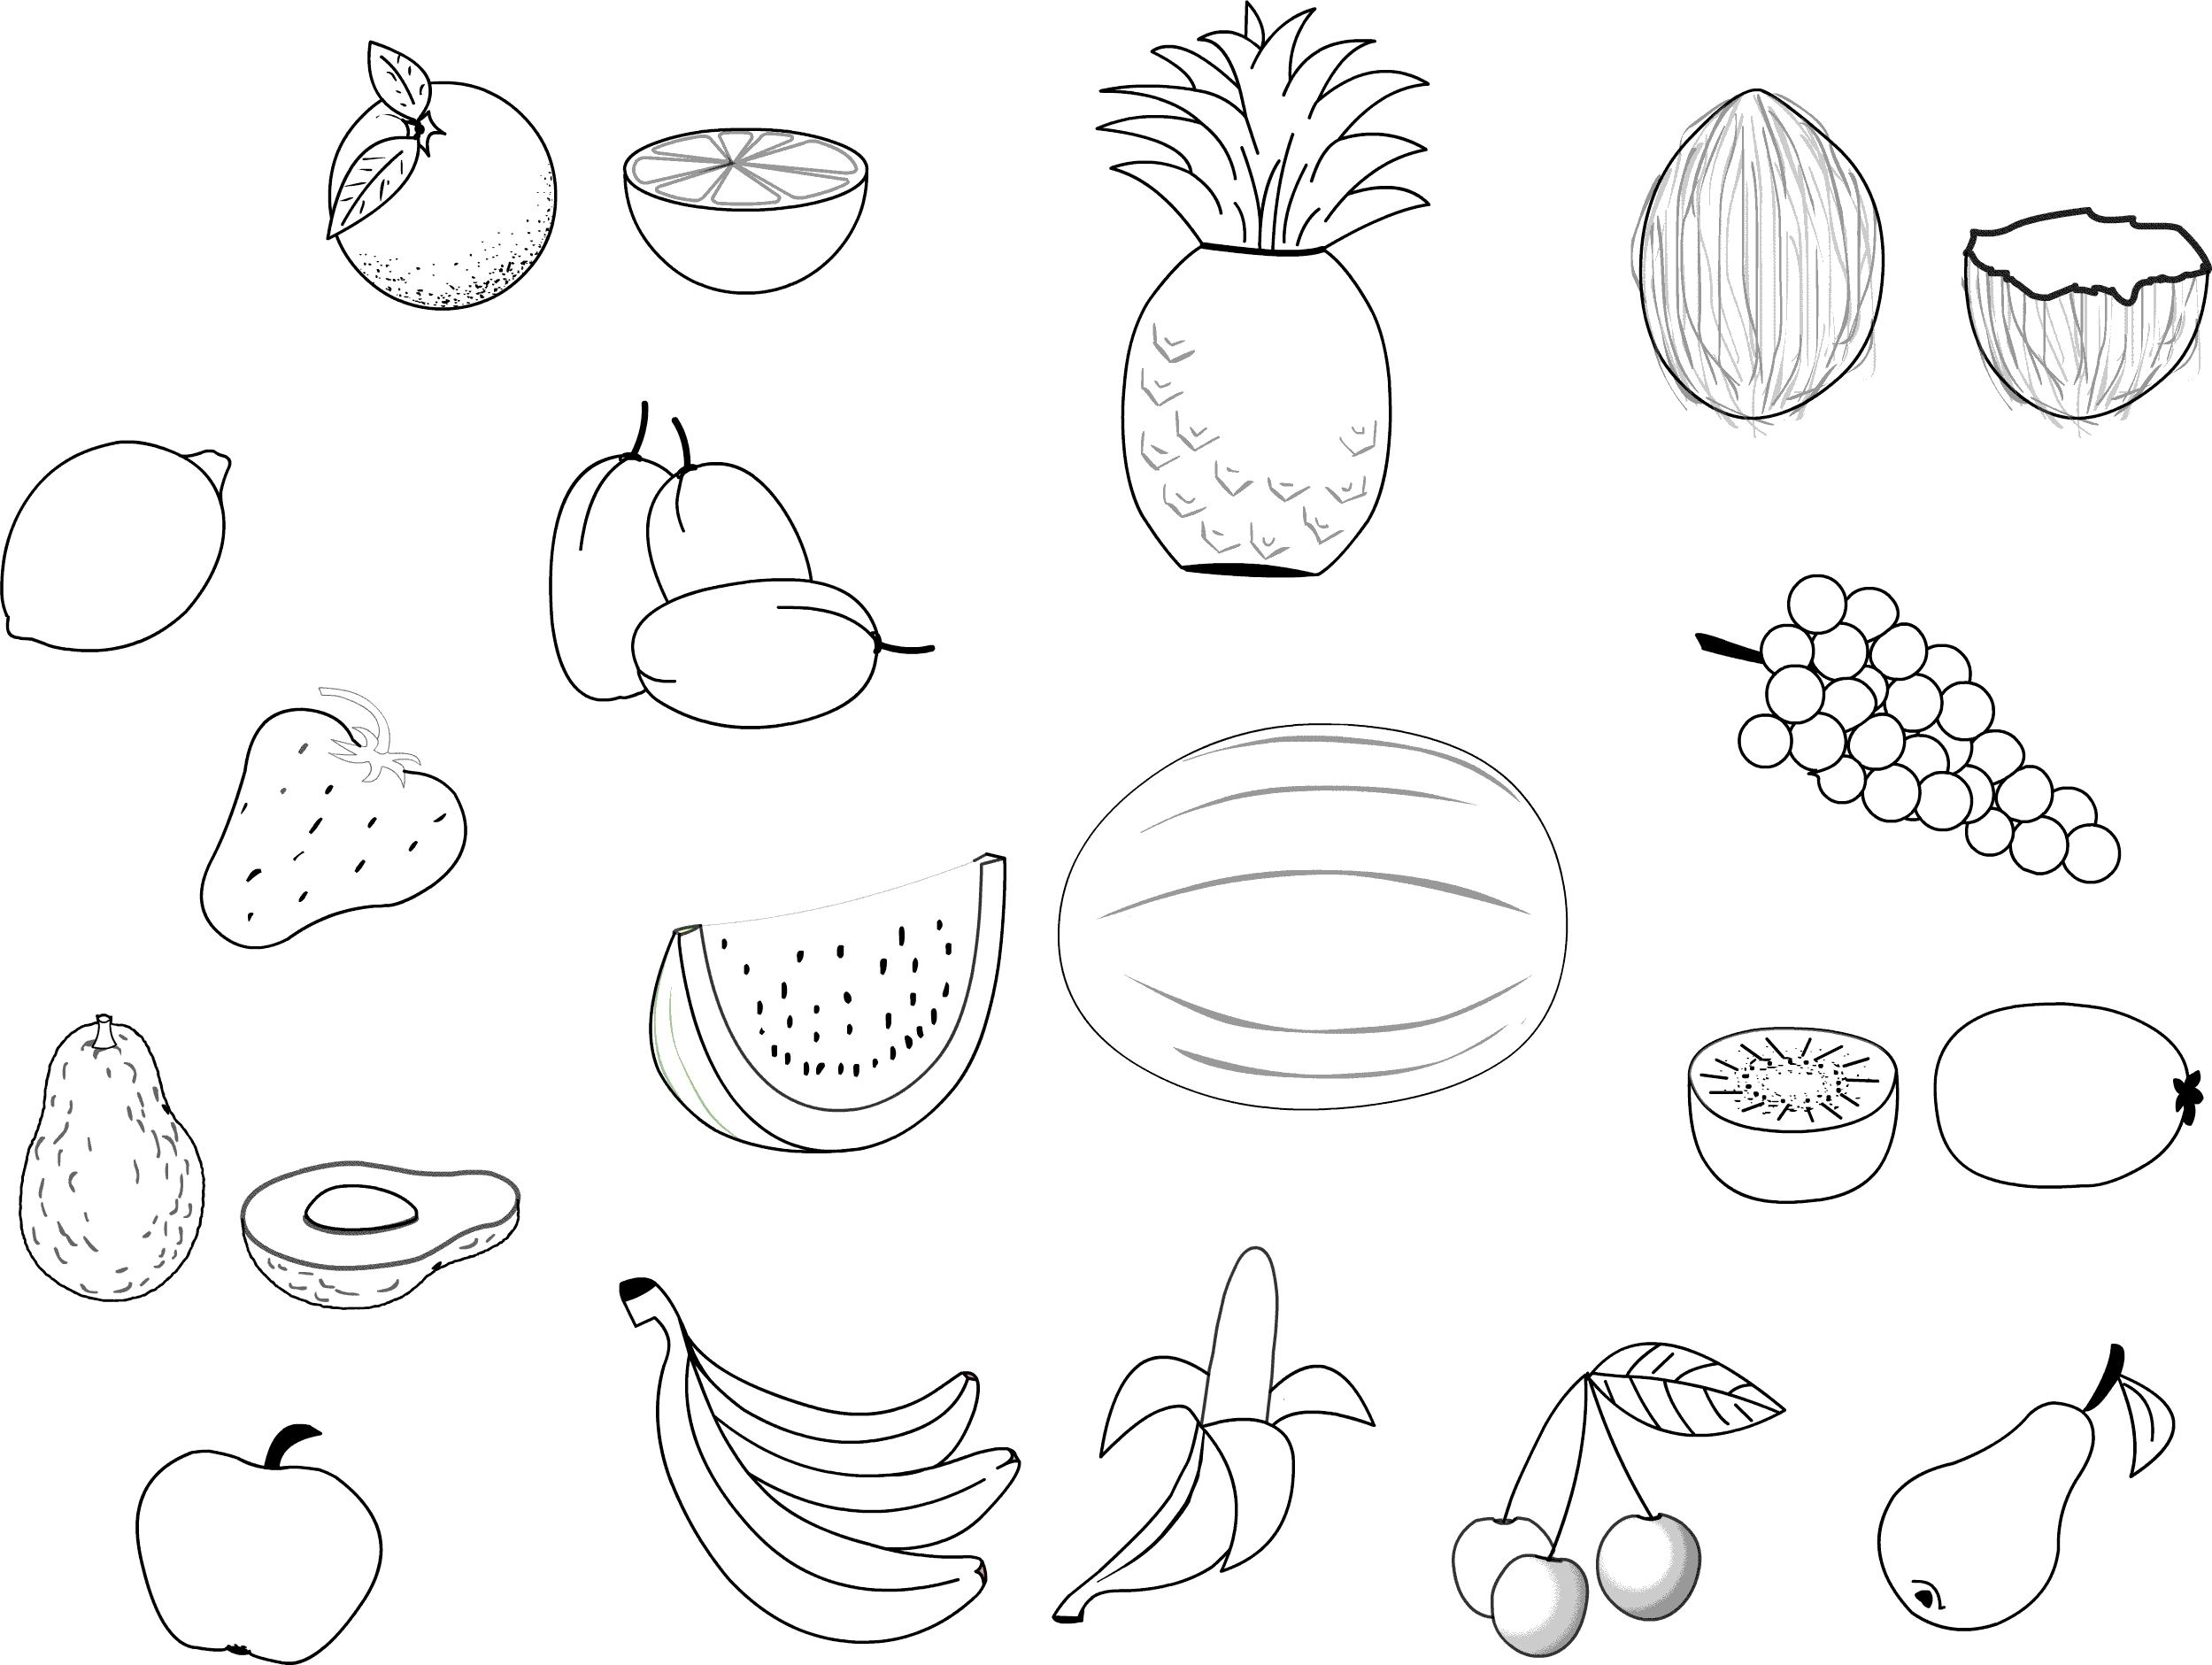 coloring vegetables and fruits fruits and vegetables free to color for kids fruits and coloring vegetables fruits and